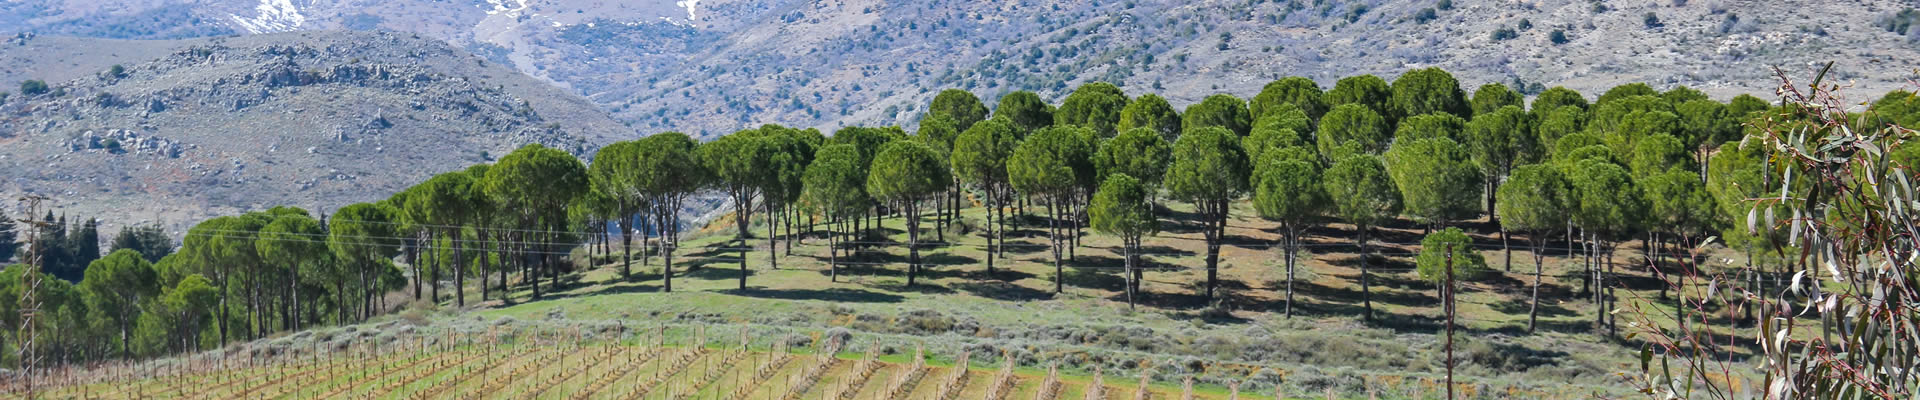 Lebanese vineyards